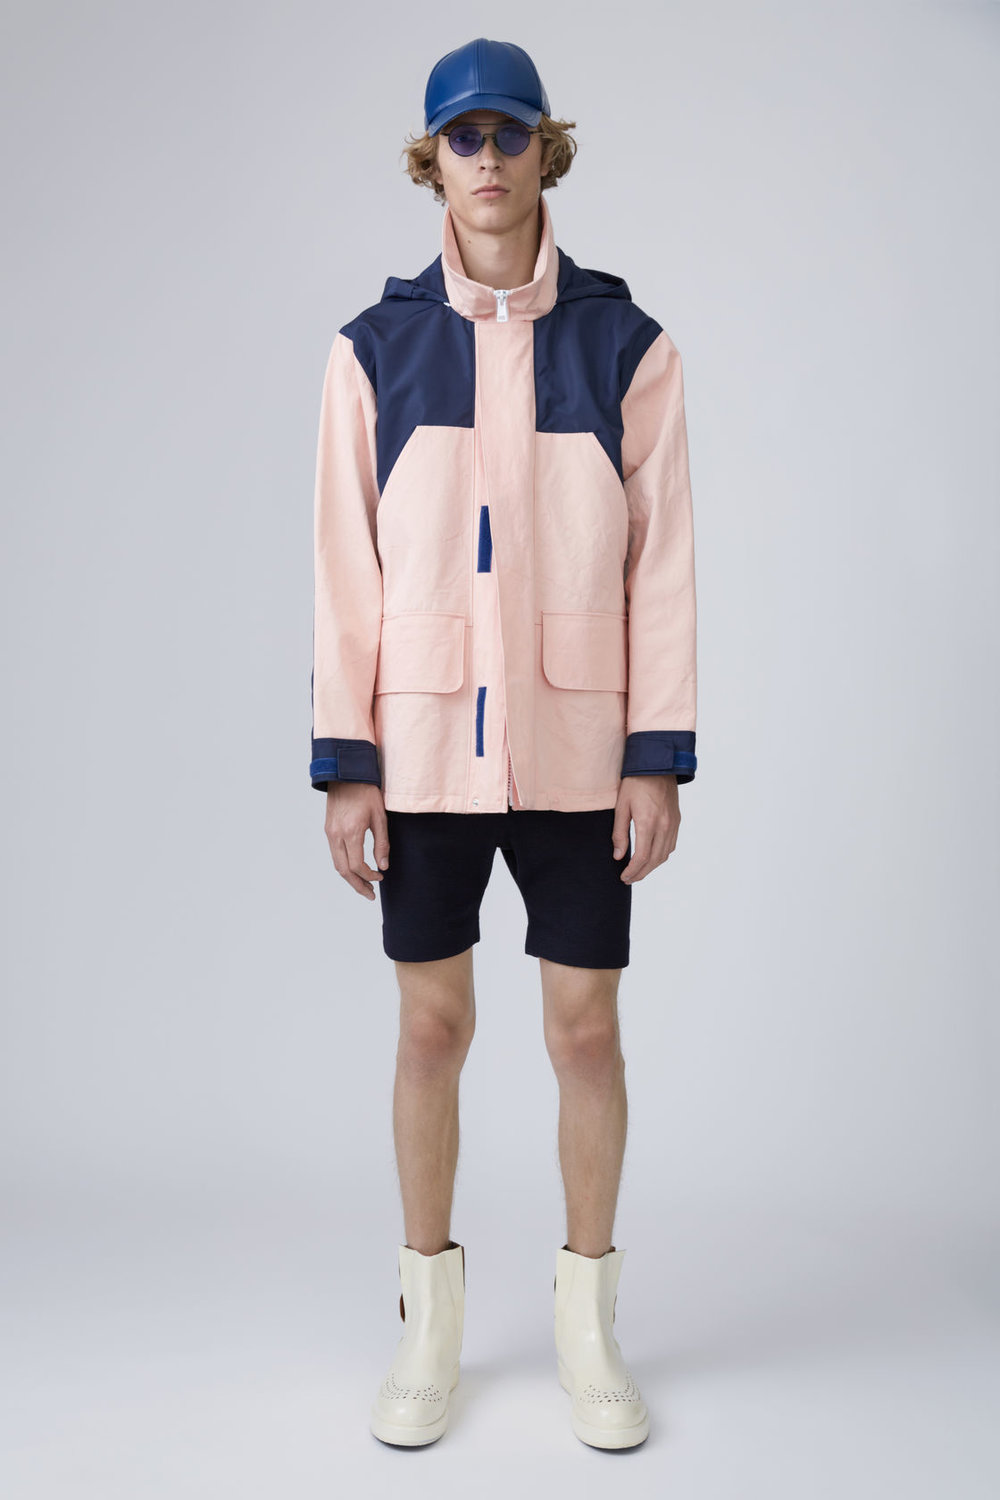 acne-studios-athletic-parka.jpg